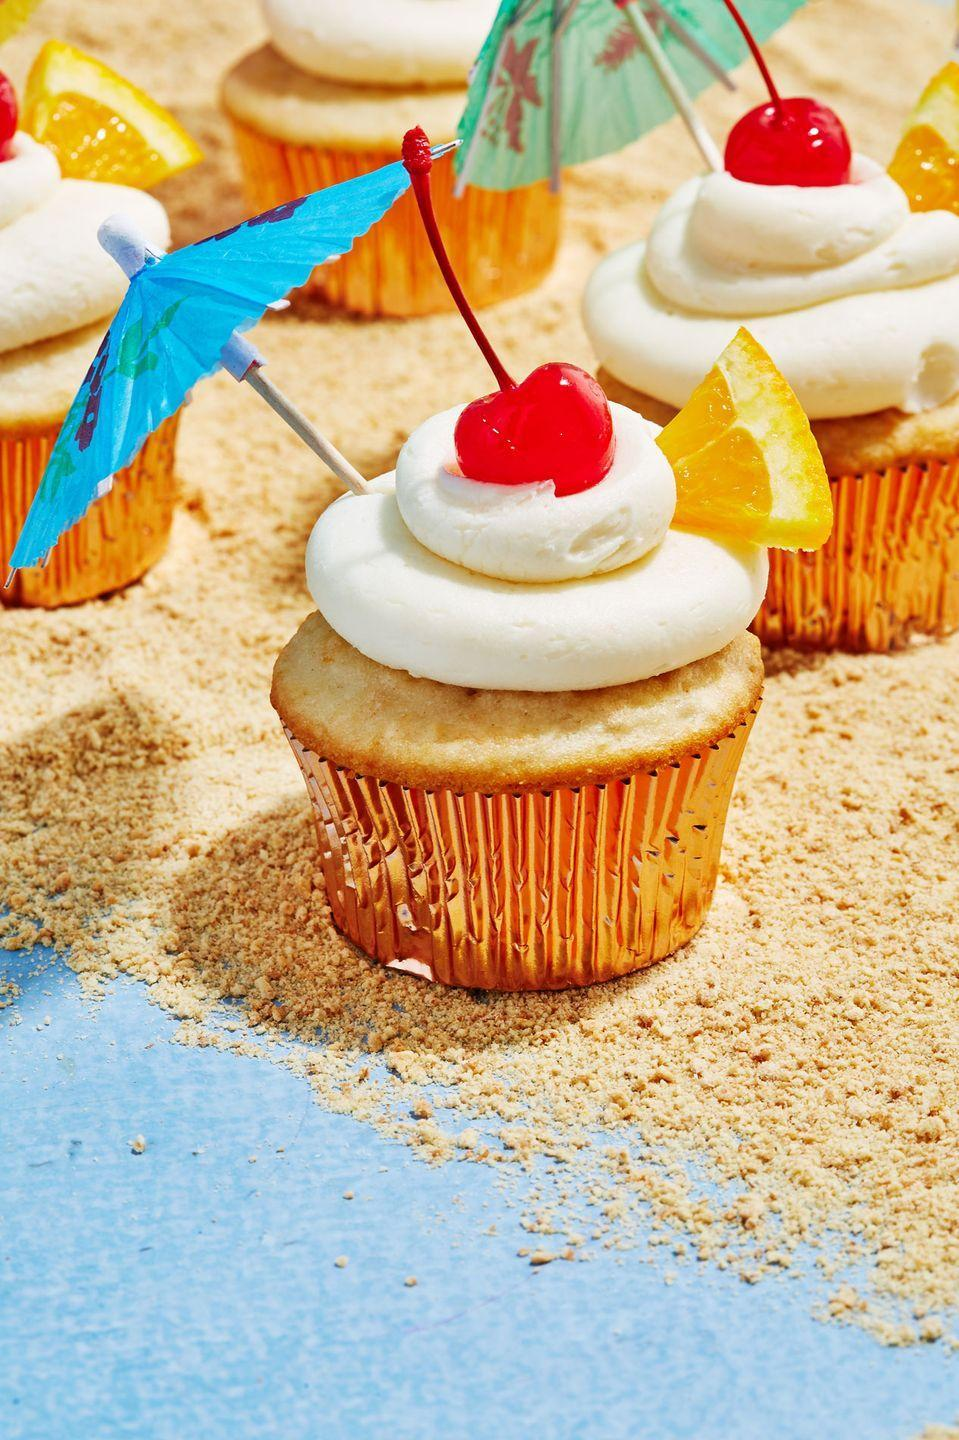 """<p>We couldn't <em>not </em>include these.</p><p>Get the recipe from <a href=""""https://www.delish.com/cooking/recipe-ideas/a19487384/bahama-mama-cupcakes-recipe/"""" rel=""""nofollow noopener"""" target=""""_blank"""" data-ylk=""""slk:Delish"""" class=""""link rapid-noclick-resp"""">Delish</a>.</p>"""